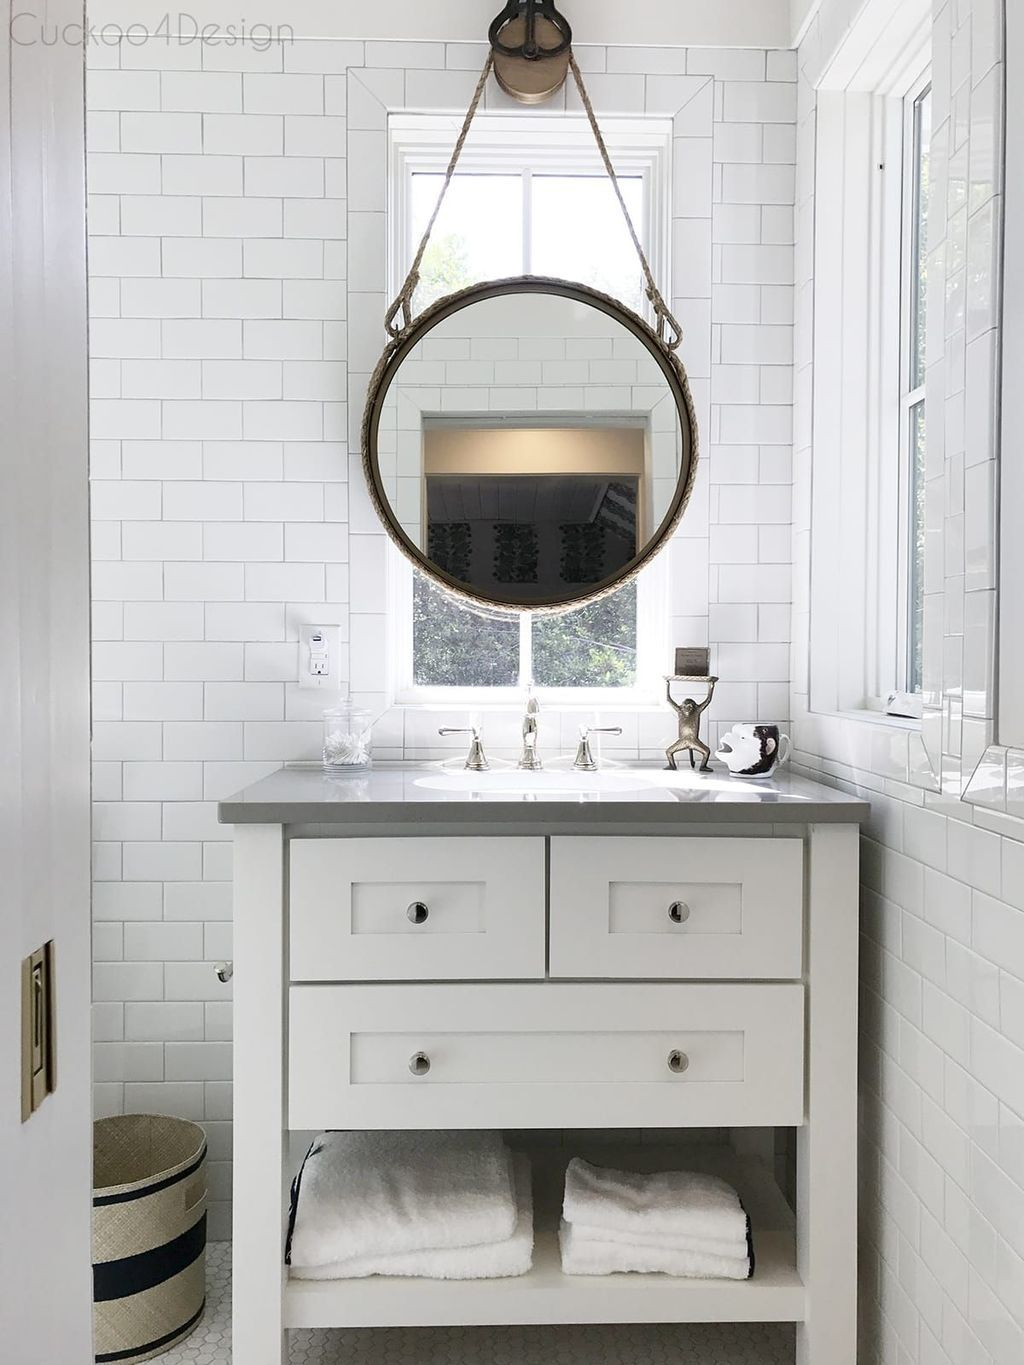 44 Awesome Bathroom Mirror Design Ideas That You Need To Know In 2020 Bathroom Mirror Design Rustic Bathroom Vanities Bathroom Mirror